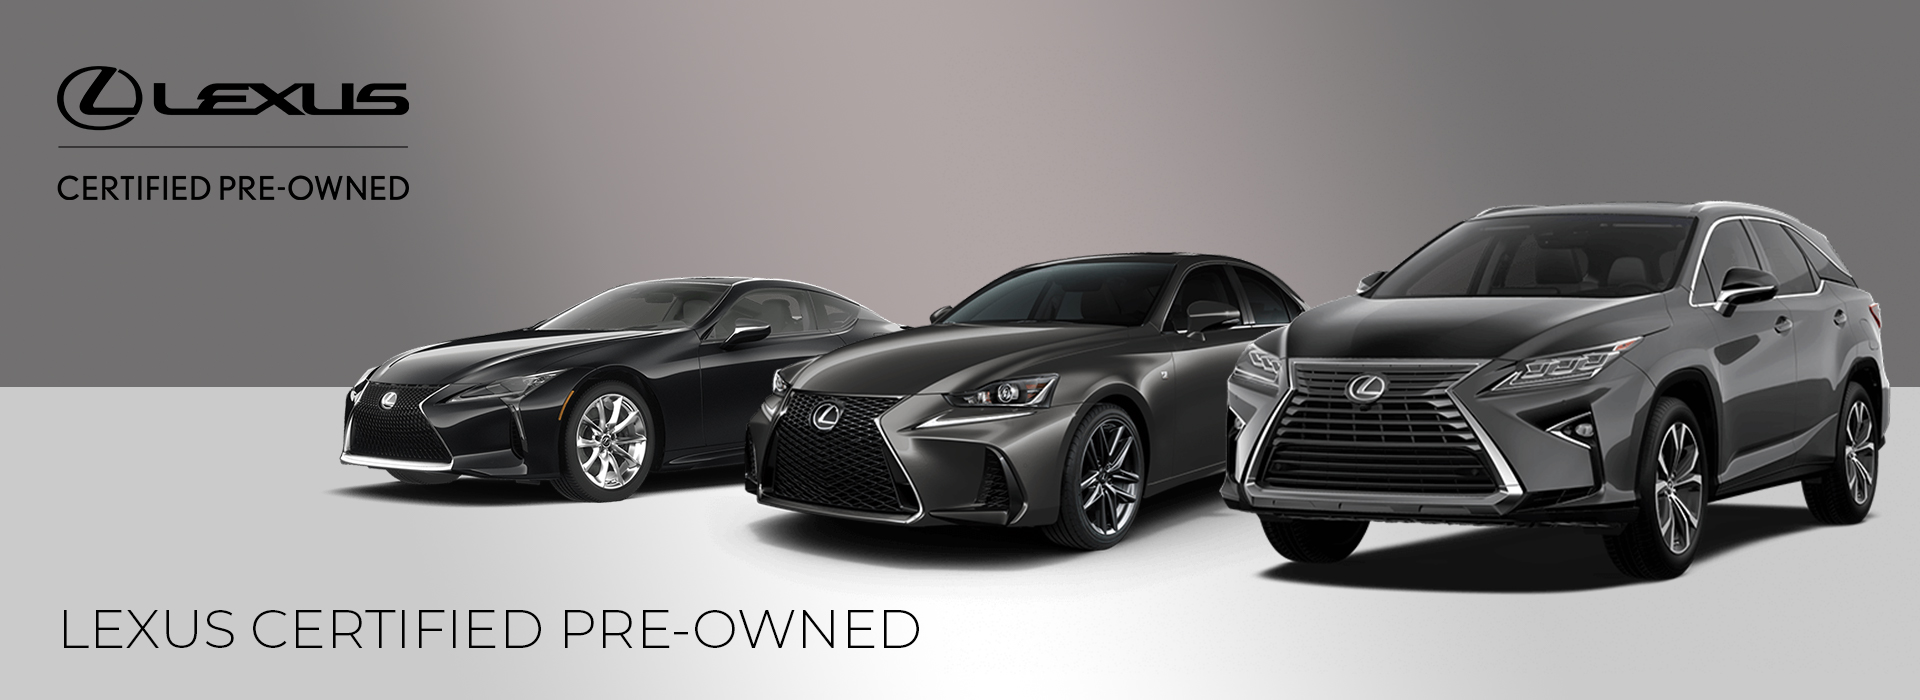 lexus certified pre-owned vehicle images and models